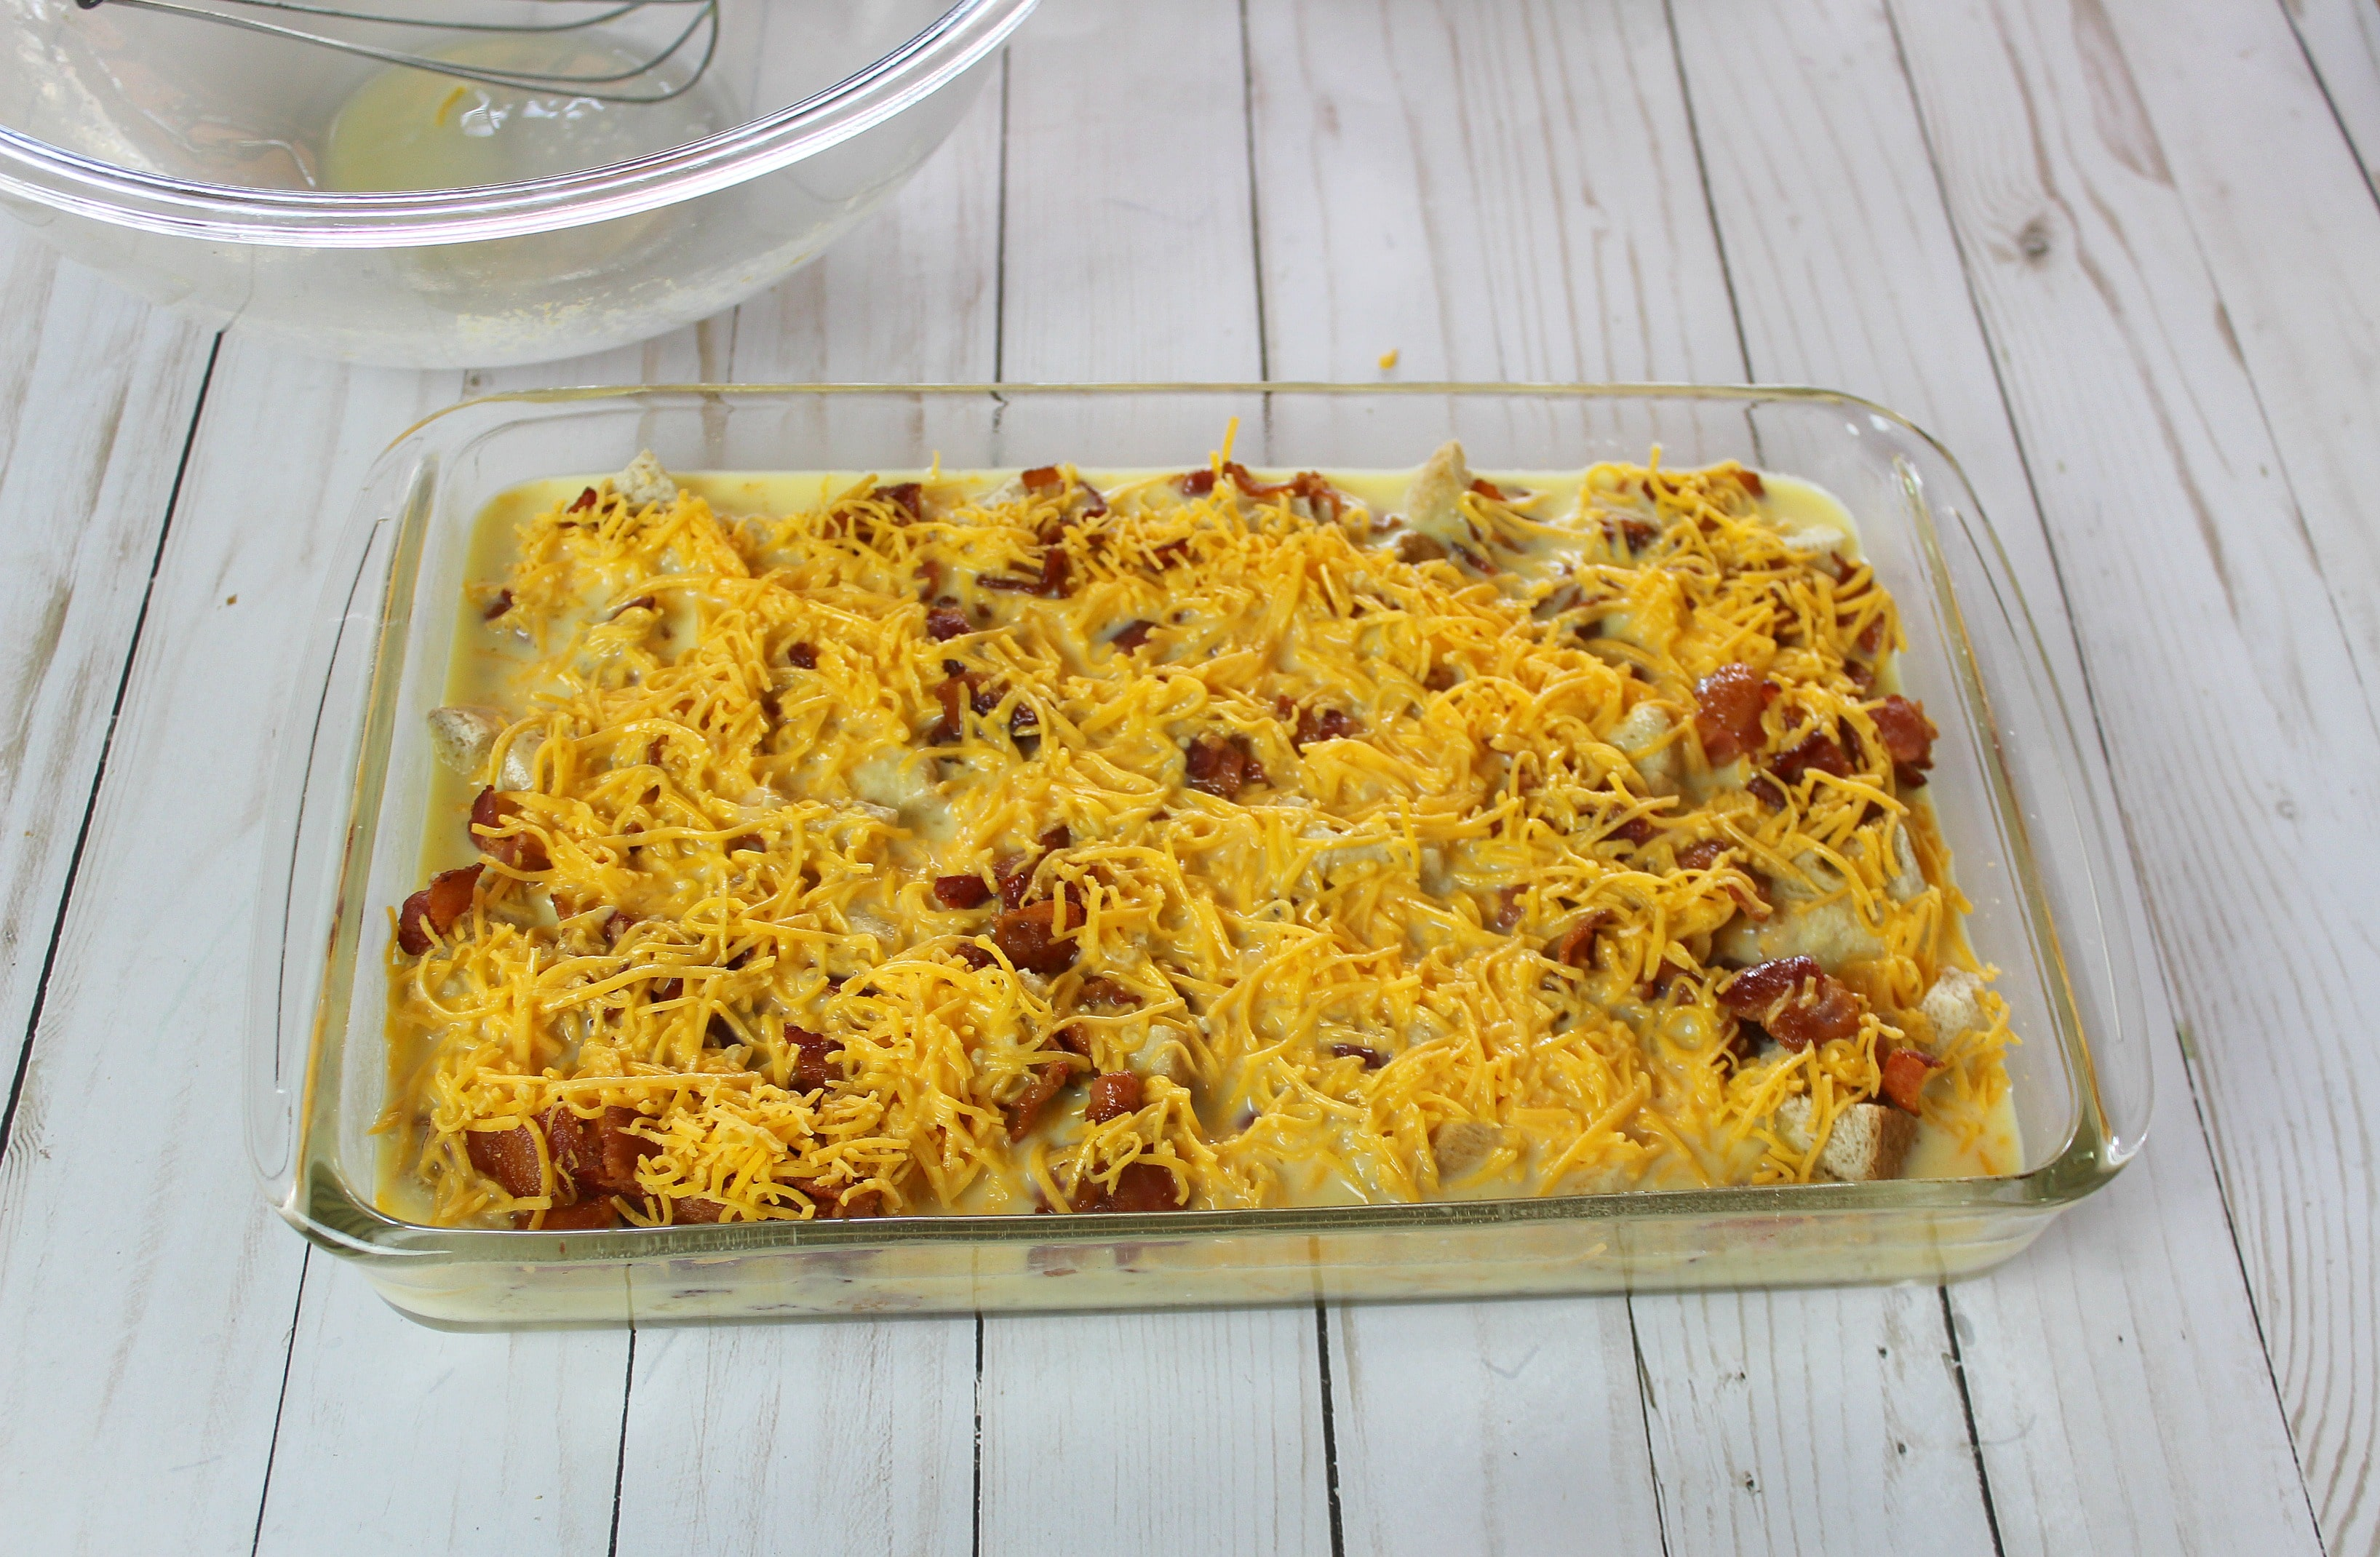 Pour egg mixture into casserole dish over bread, meat and cheese.